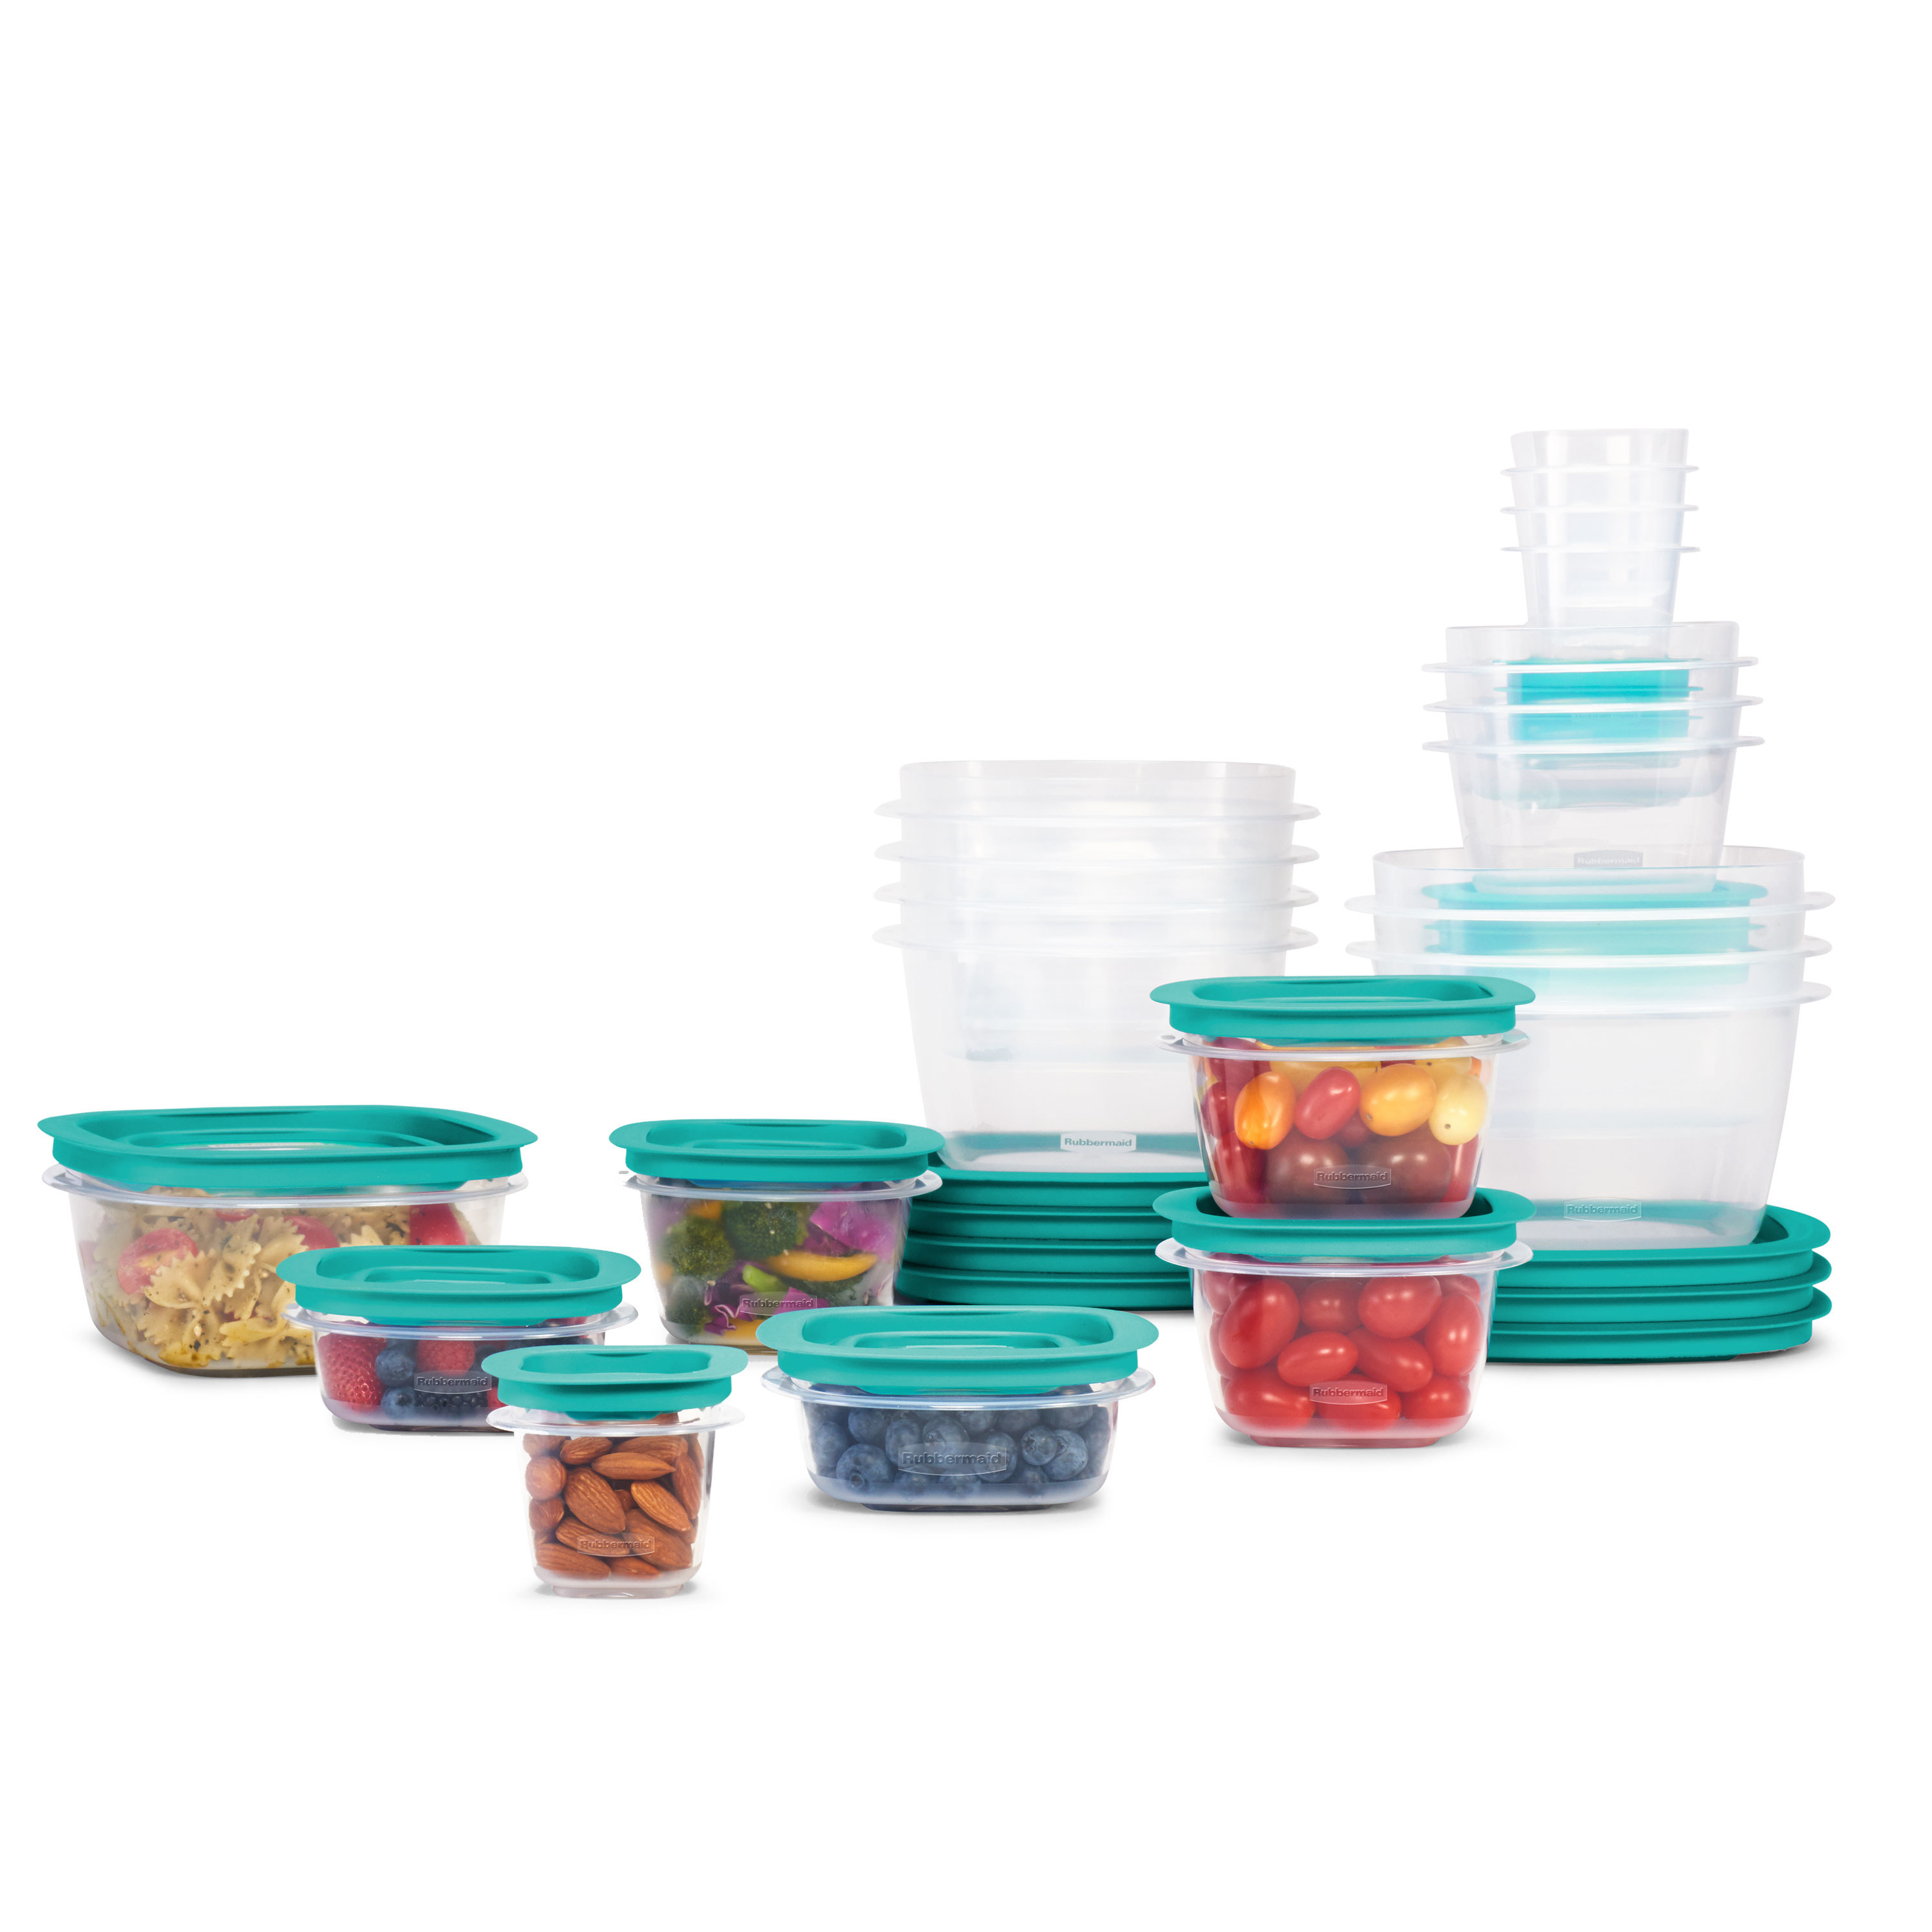 The clear and teal food storage containers